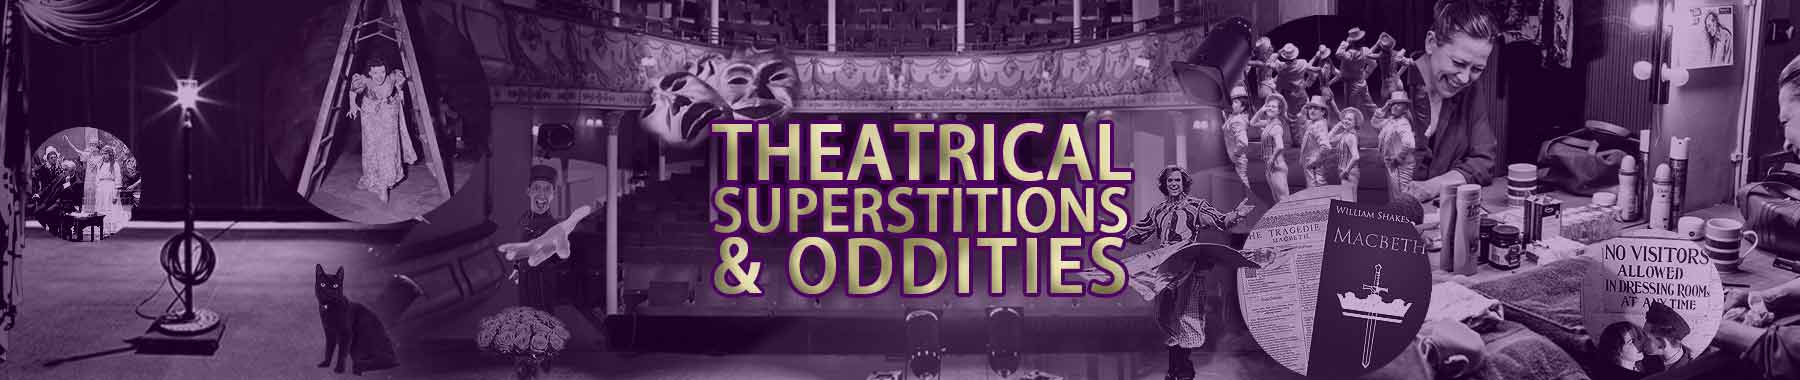 Theatre Superstitions & Oddities